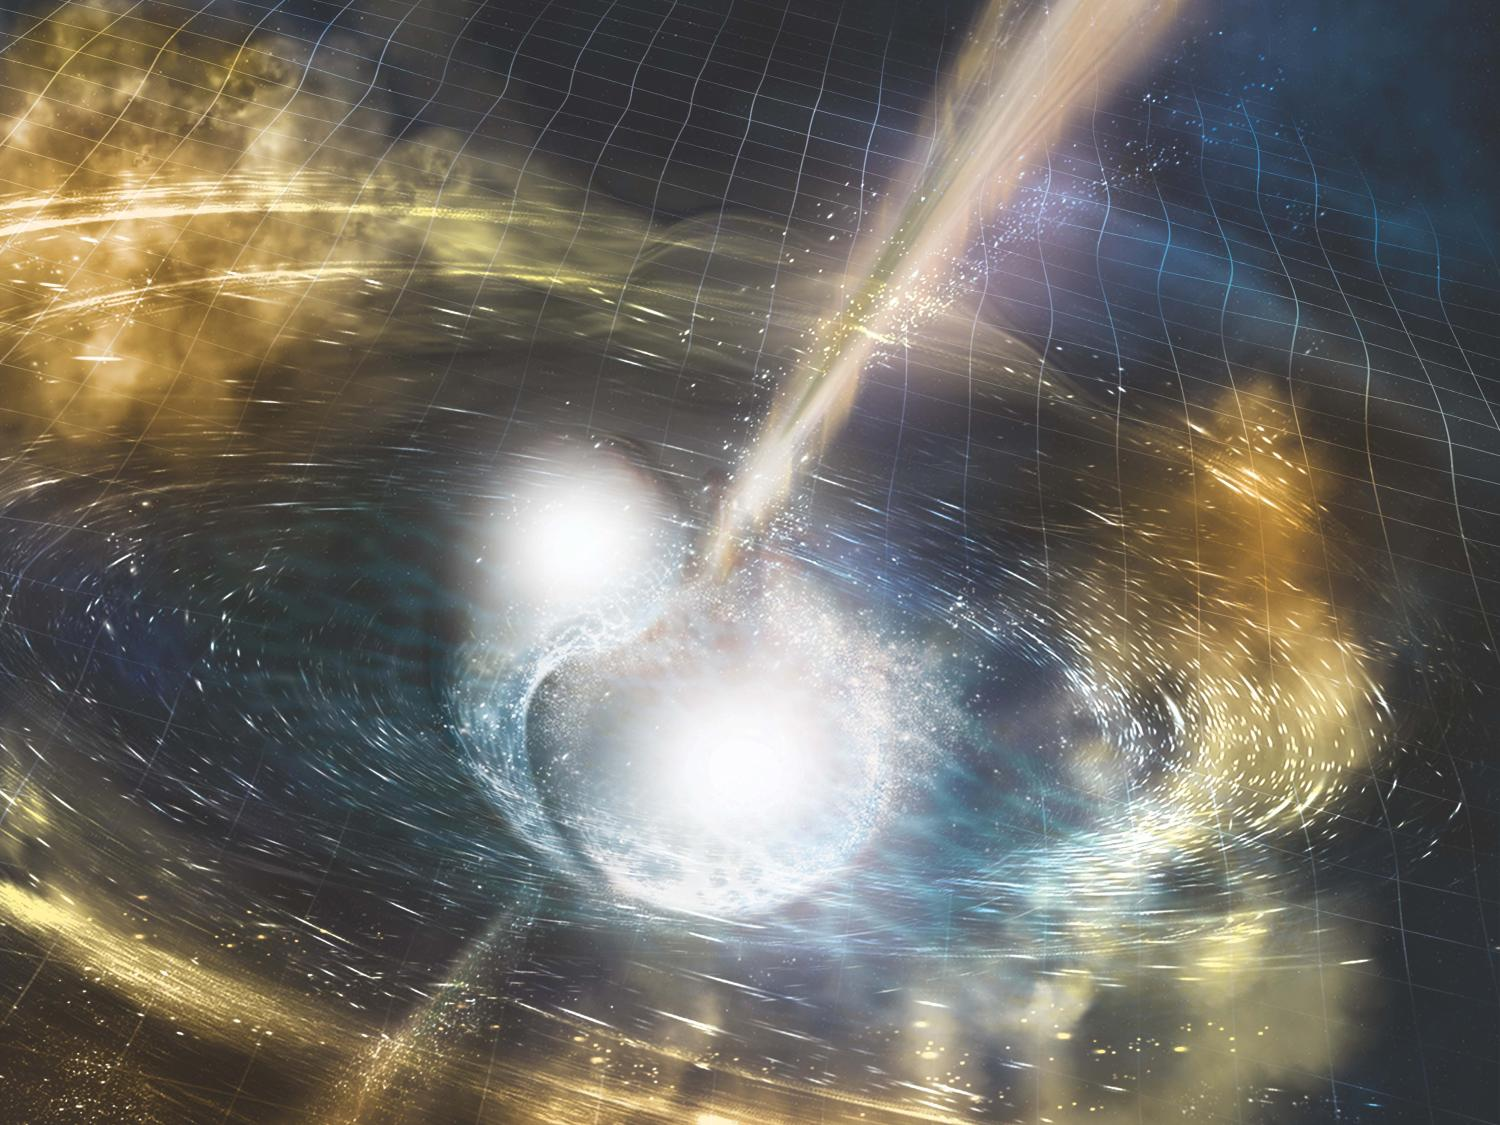 artistic depiction of a binary star merger